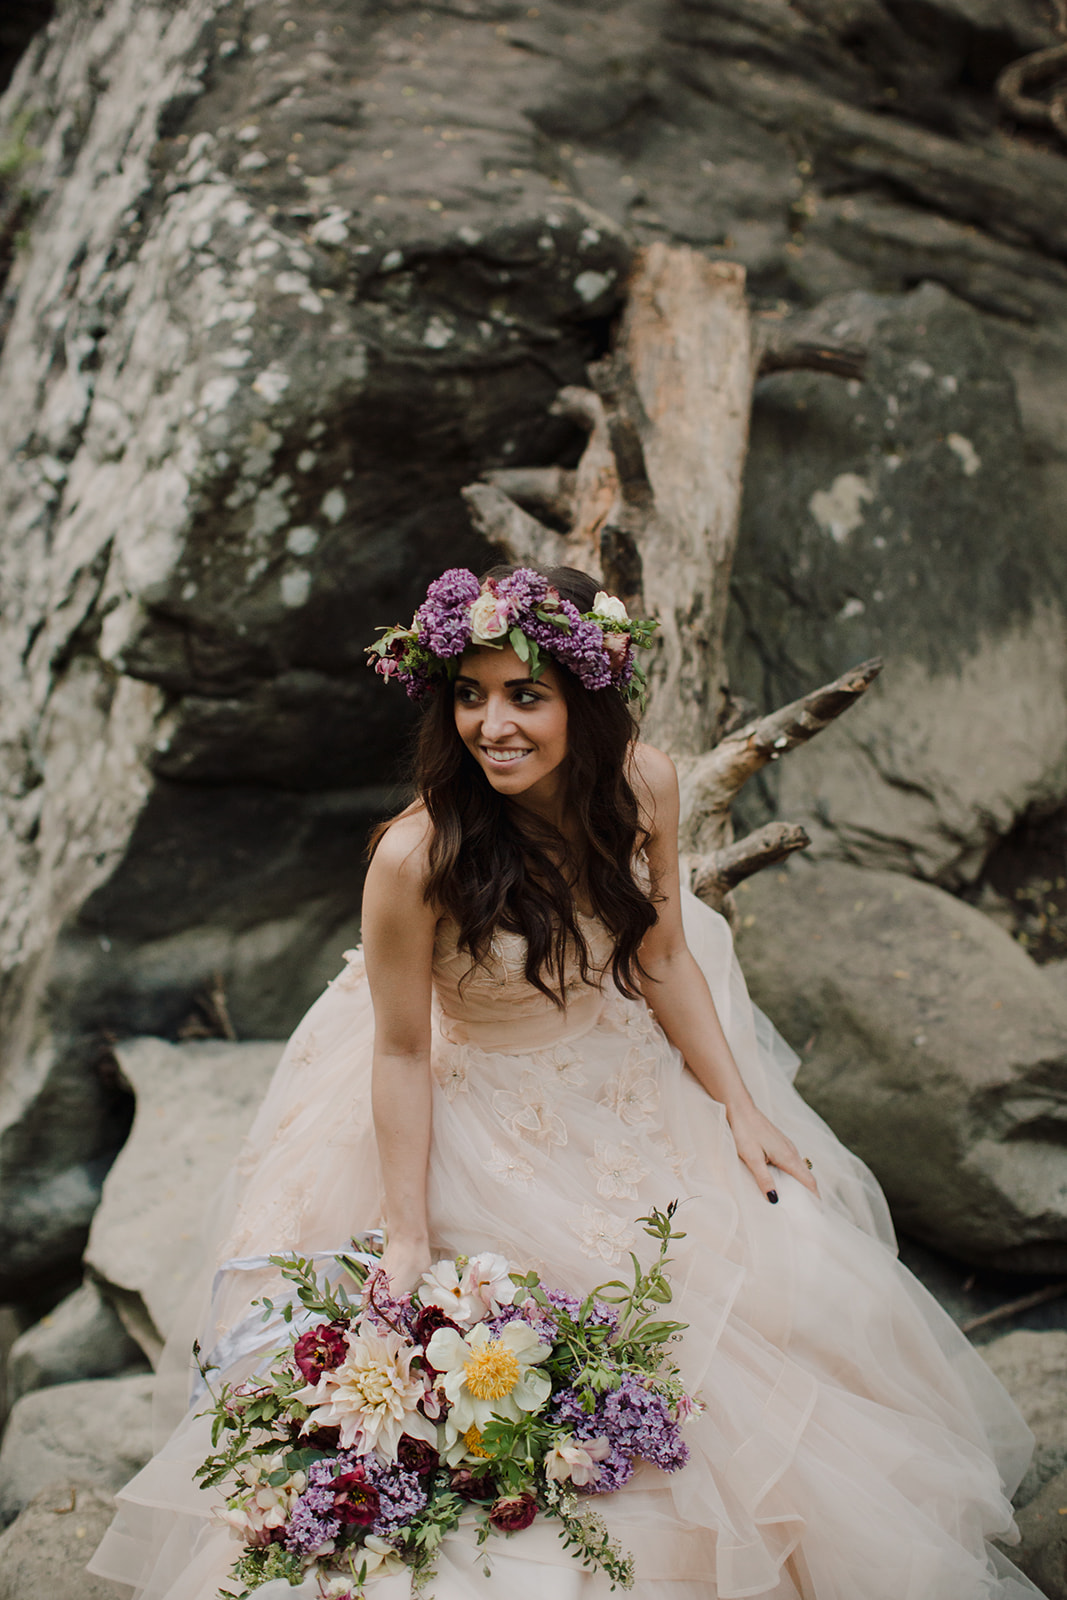 Lush bridal bouquet with lilac, peonies, cafe au lait dahlias, and butterfly ranunculus // Nashville Waterfall Elopement Floral Design